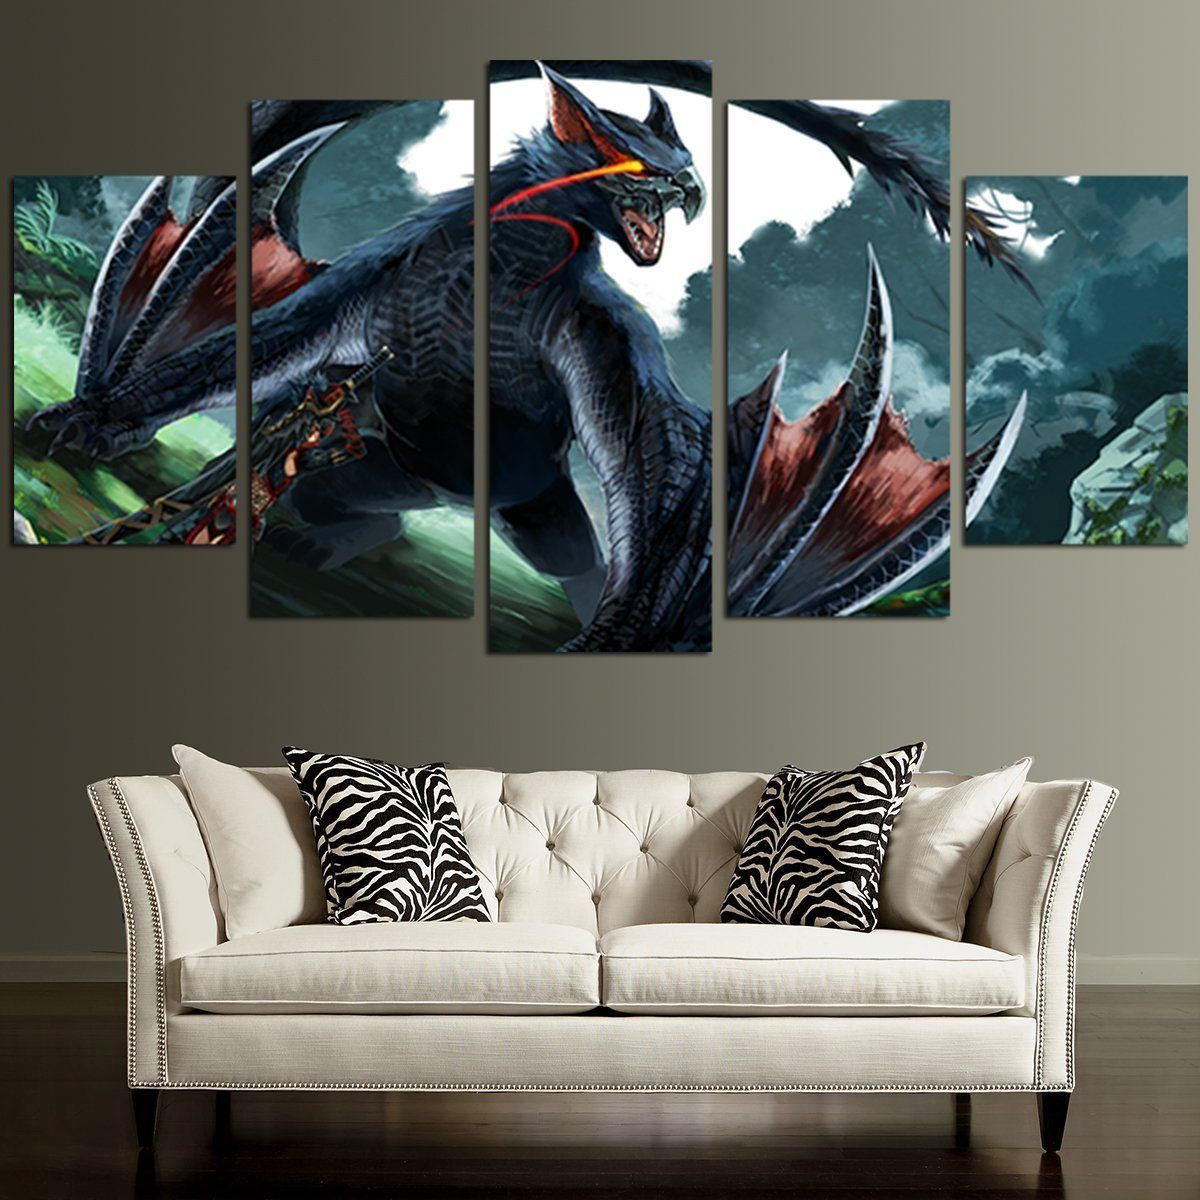 Lancaster Spitfire /& Poppy  Canvas Print 20x30 inches